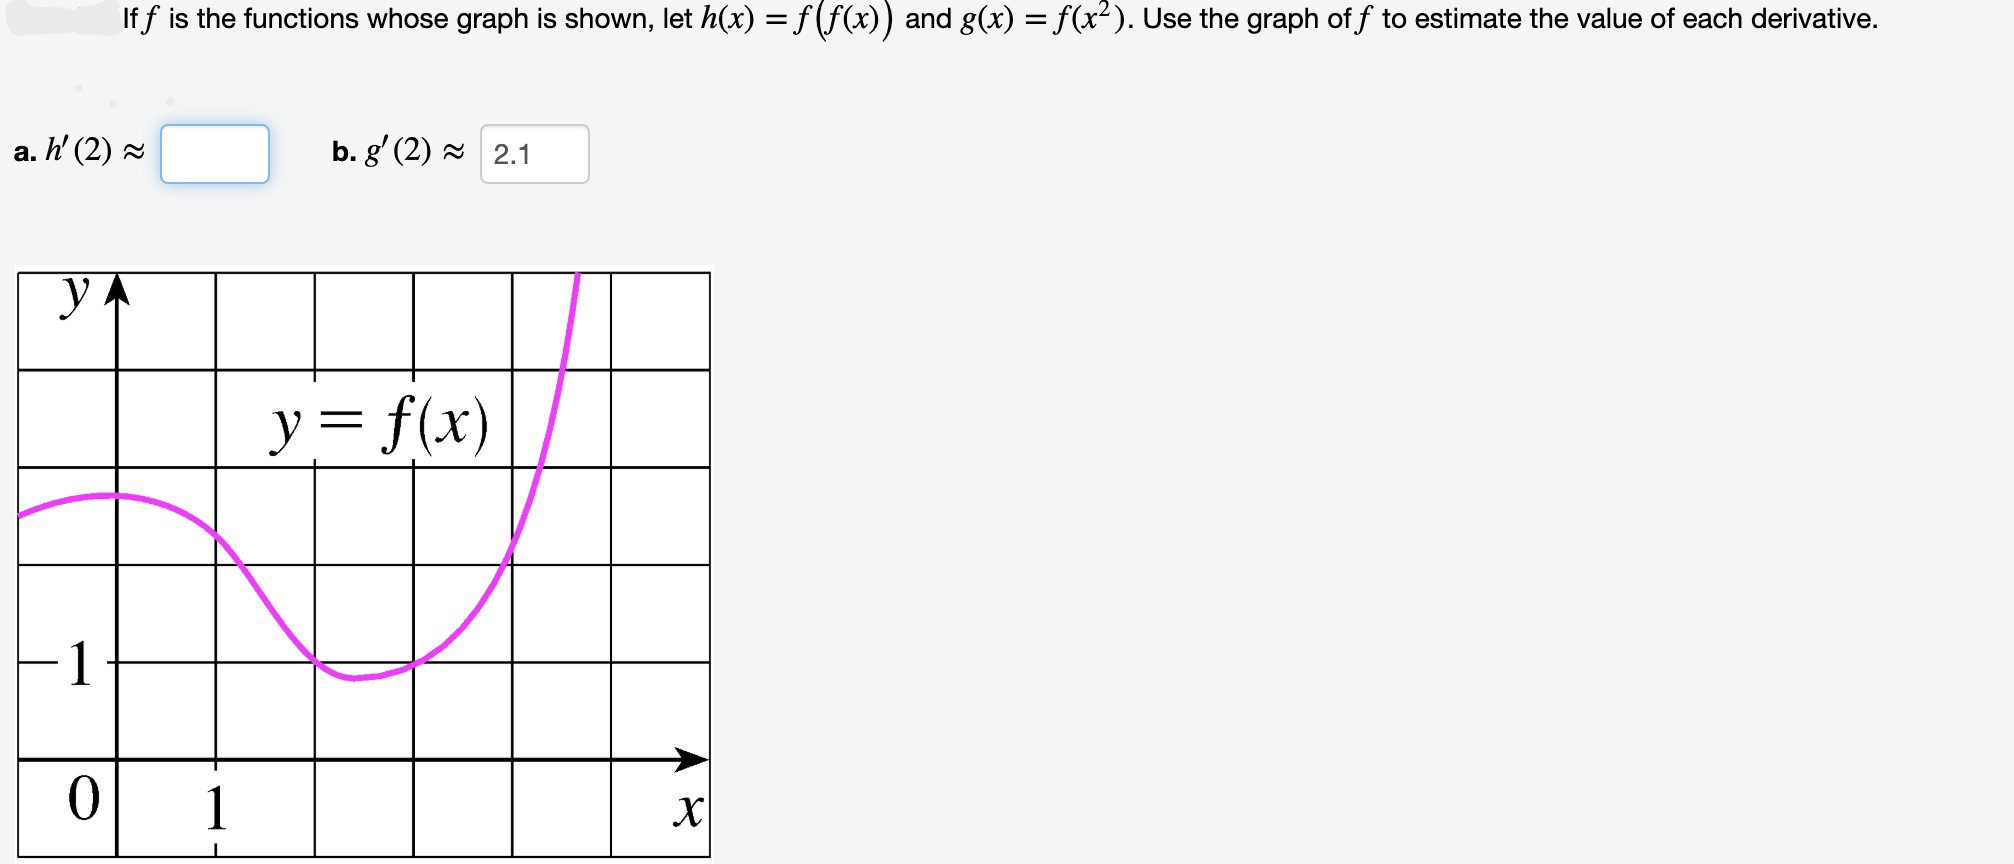 If f is the functions whose graph is shown, let h(x) = f(f(x)) and g(x) = f(x2). Use the graph of f to estimate the value of each derivative. b. g' (2)2.1 a. h' (2) y= f(x) 0 1 х